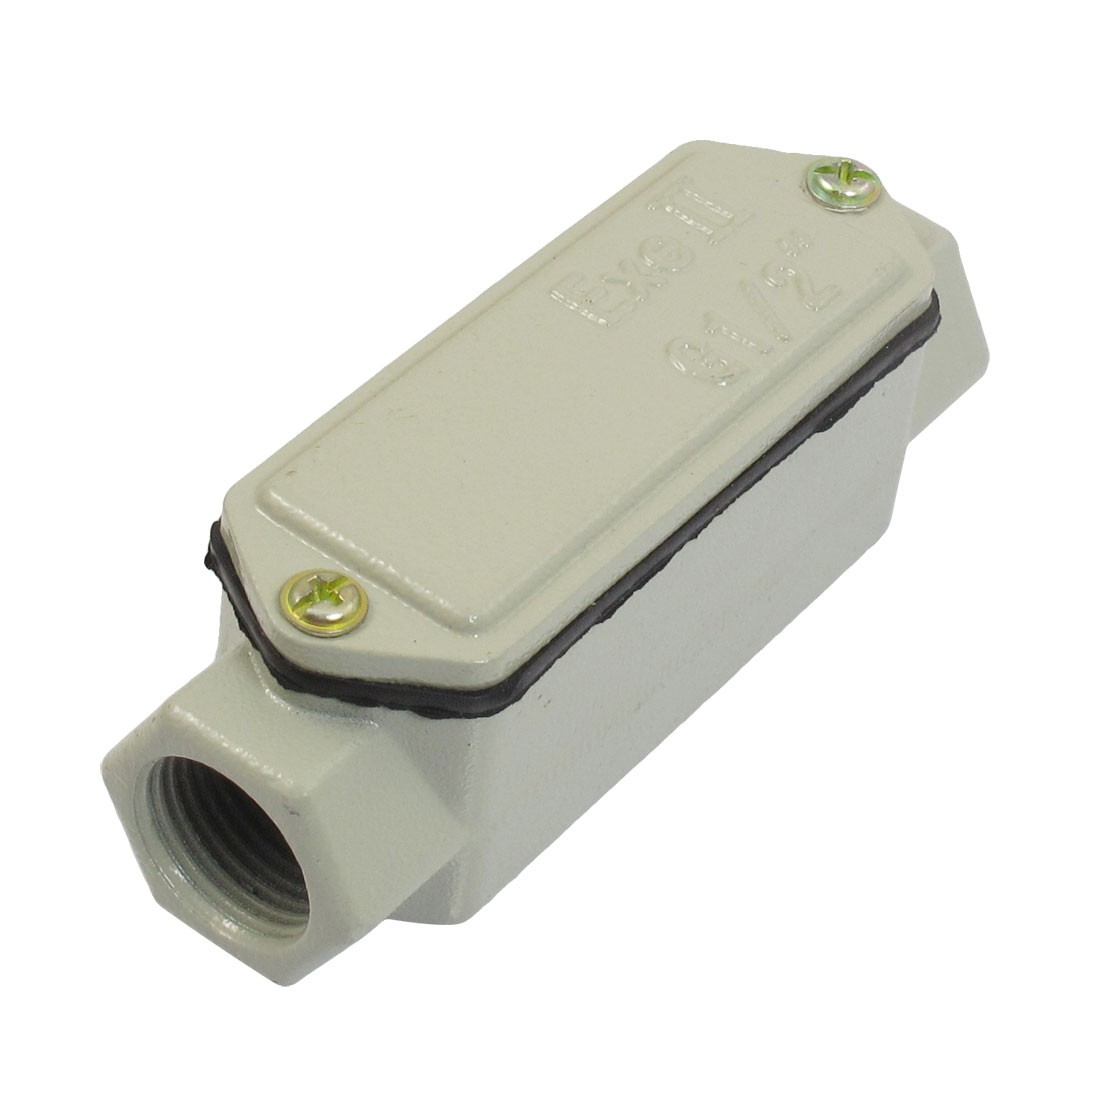 """G1/2"""" 2 Hole Linear Cylindrical Metal Explosion-proof Conduit Outlet Box"""